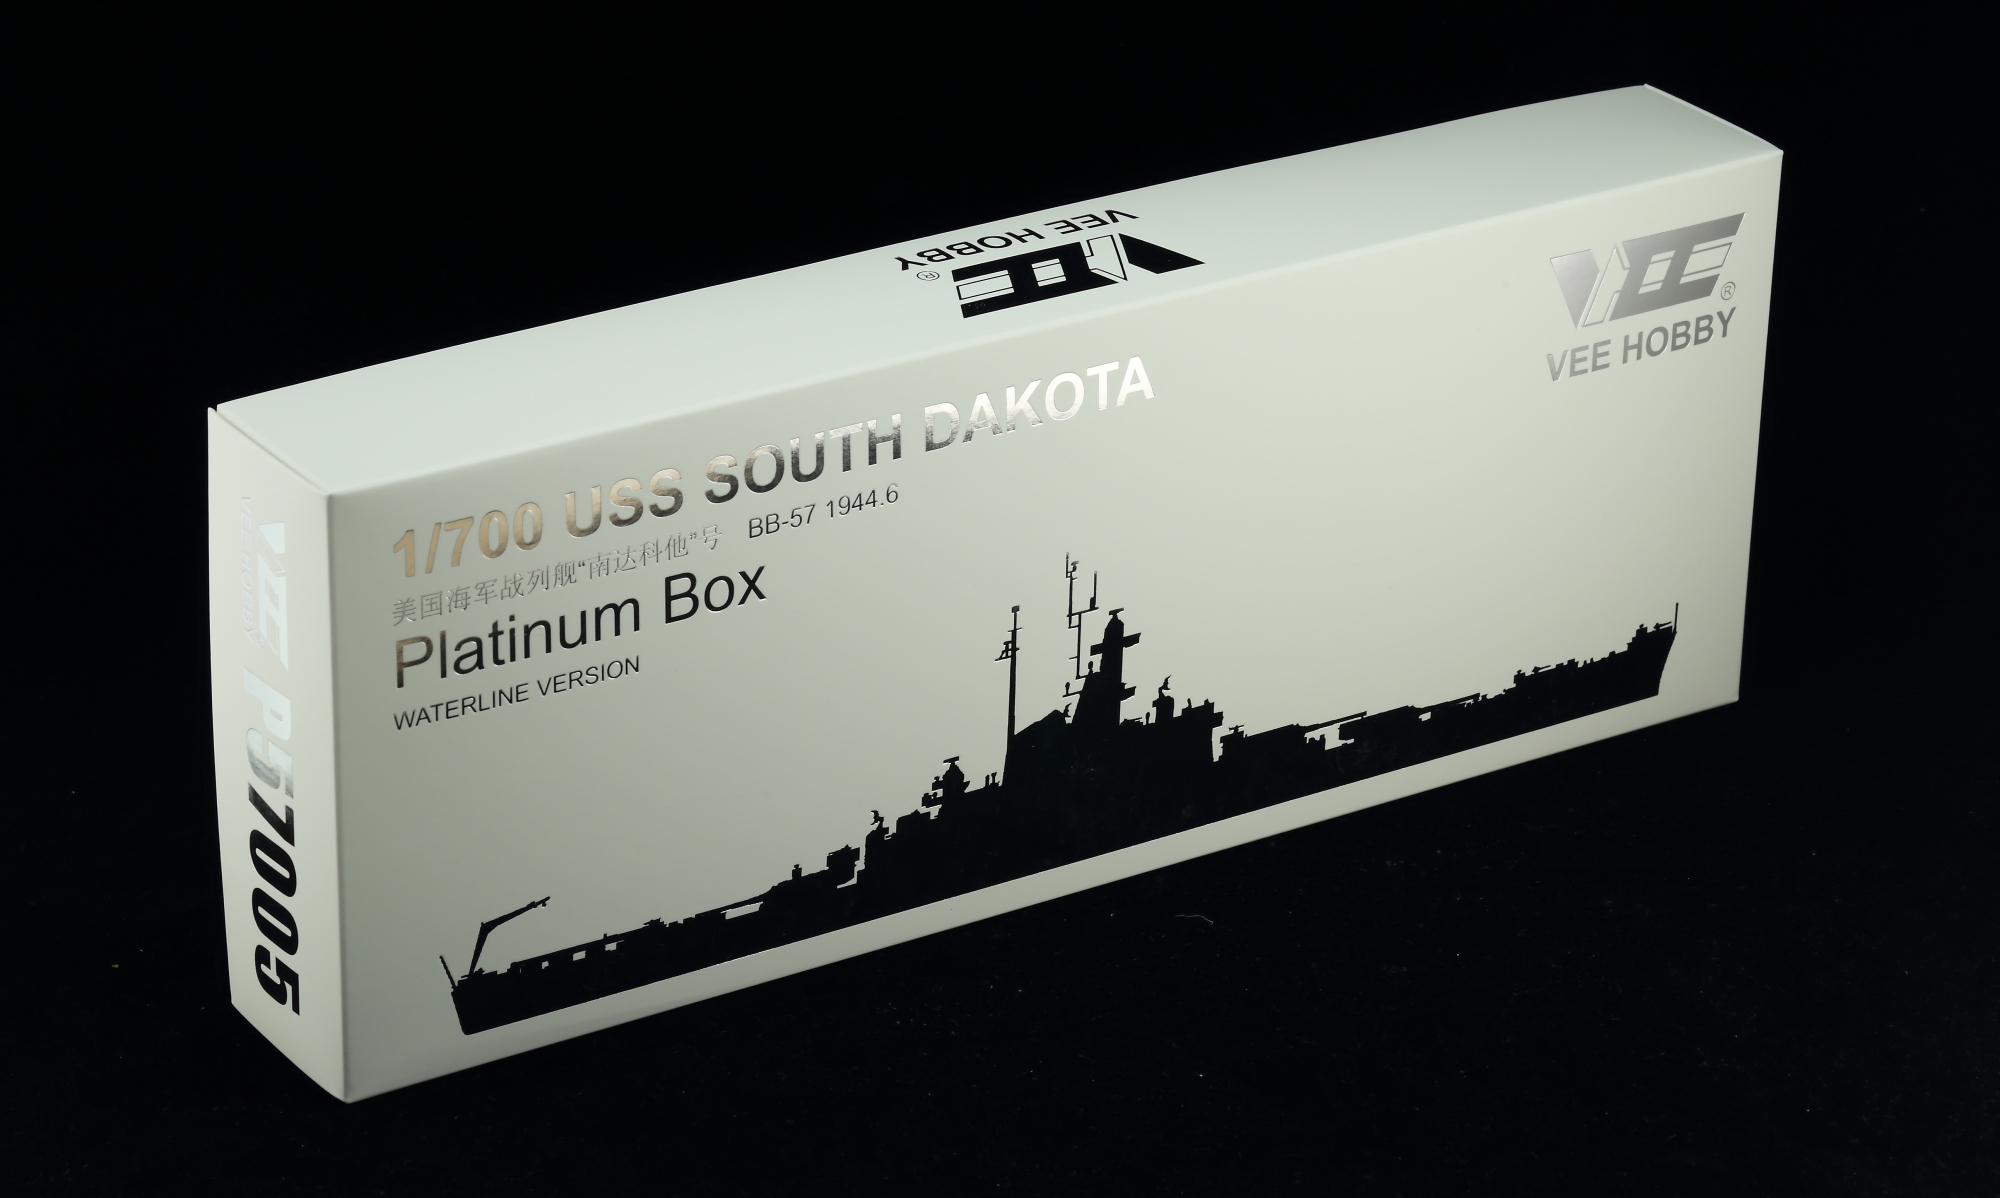 Vee Hobby 1/700 South Dakota Battleship BB-57 1944 (Platinum Edition)